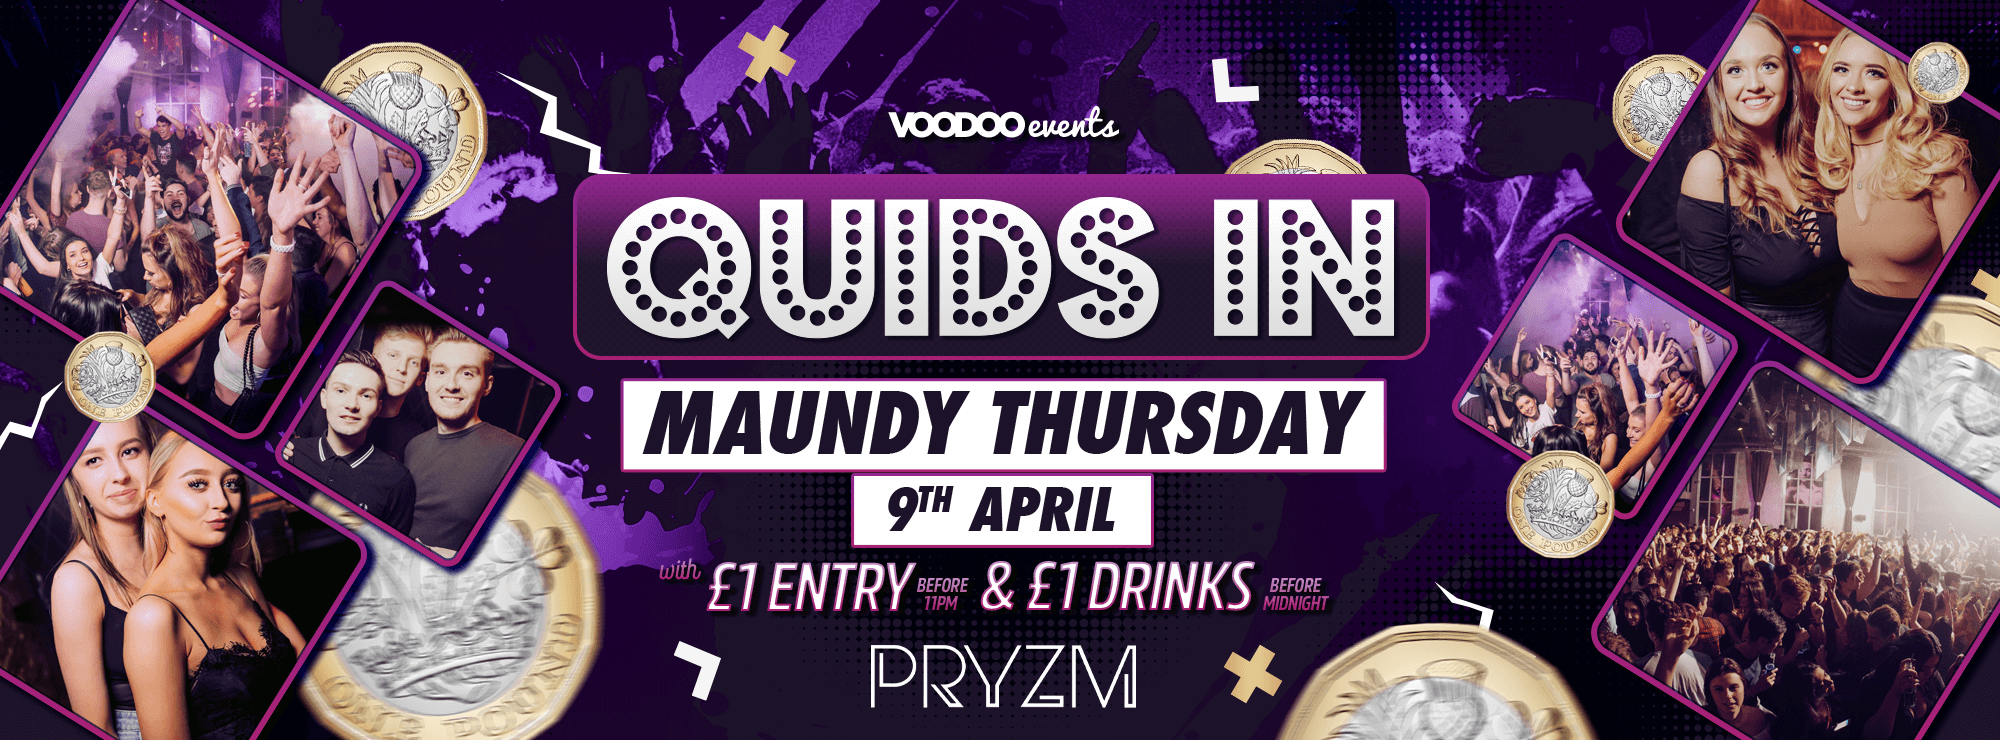 Quids In Maundy Thursday Special!